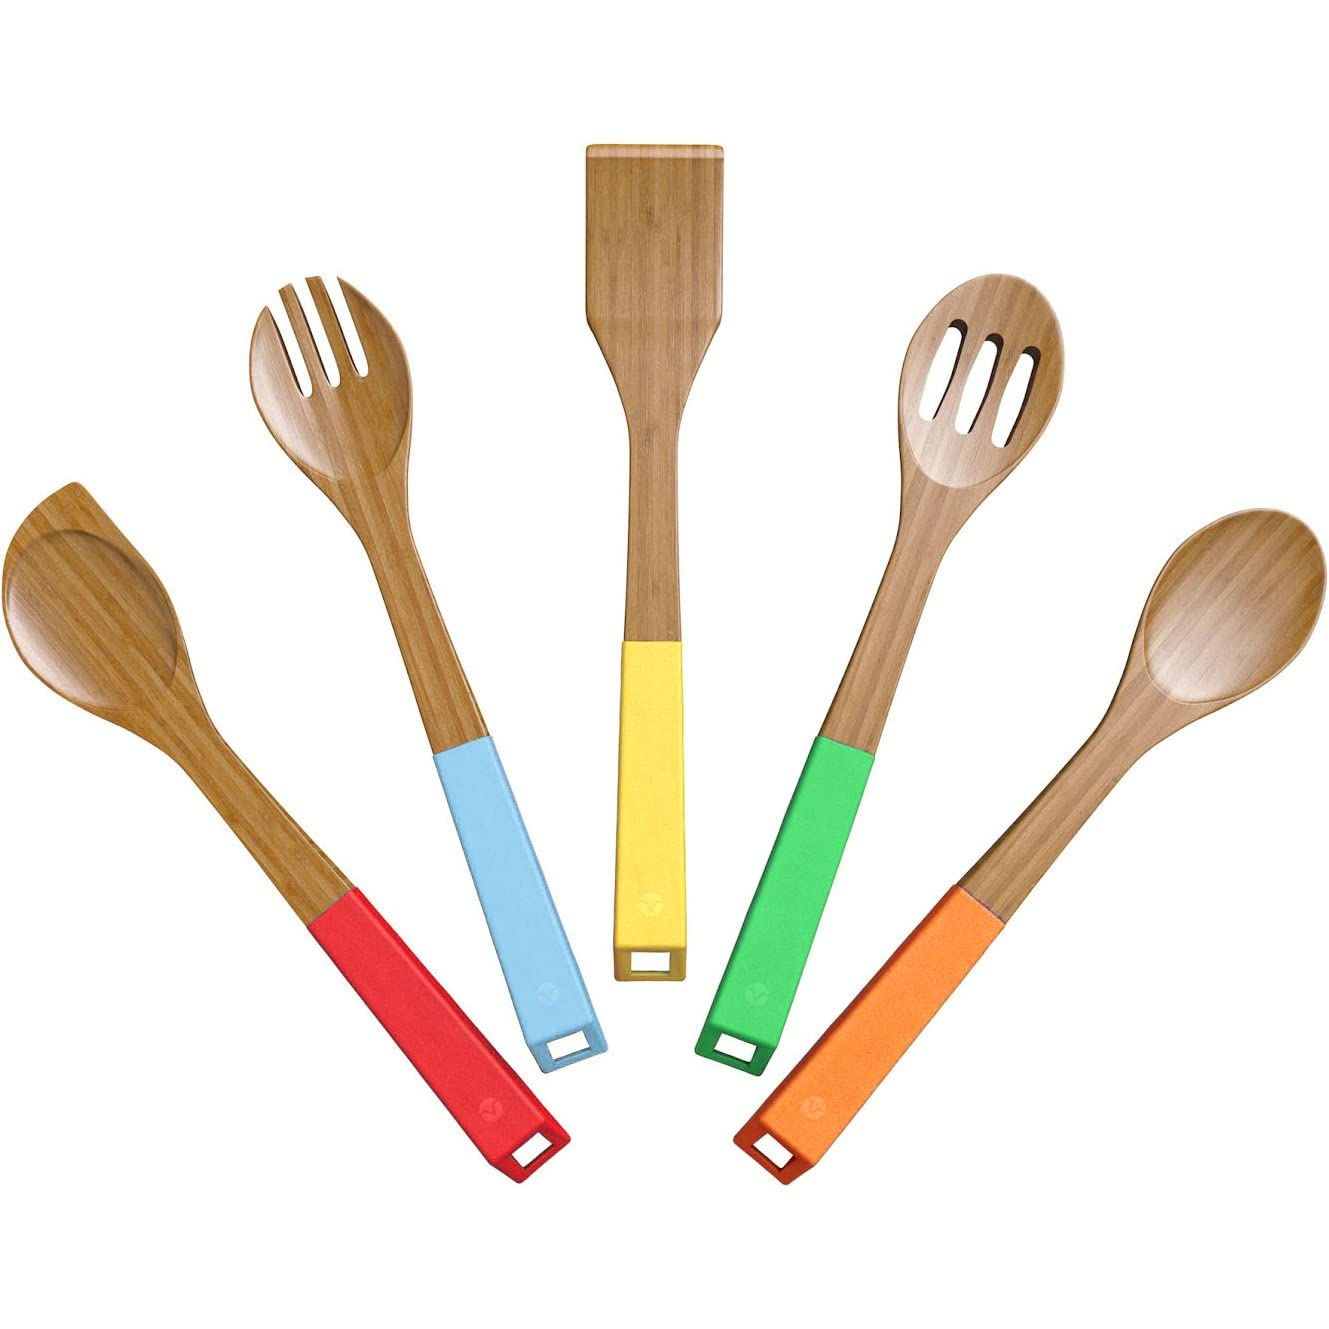 Best Wooden Spoon August 2019 Buyers Guide And Reviews